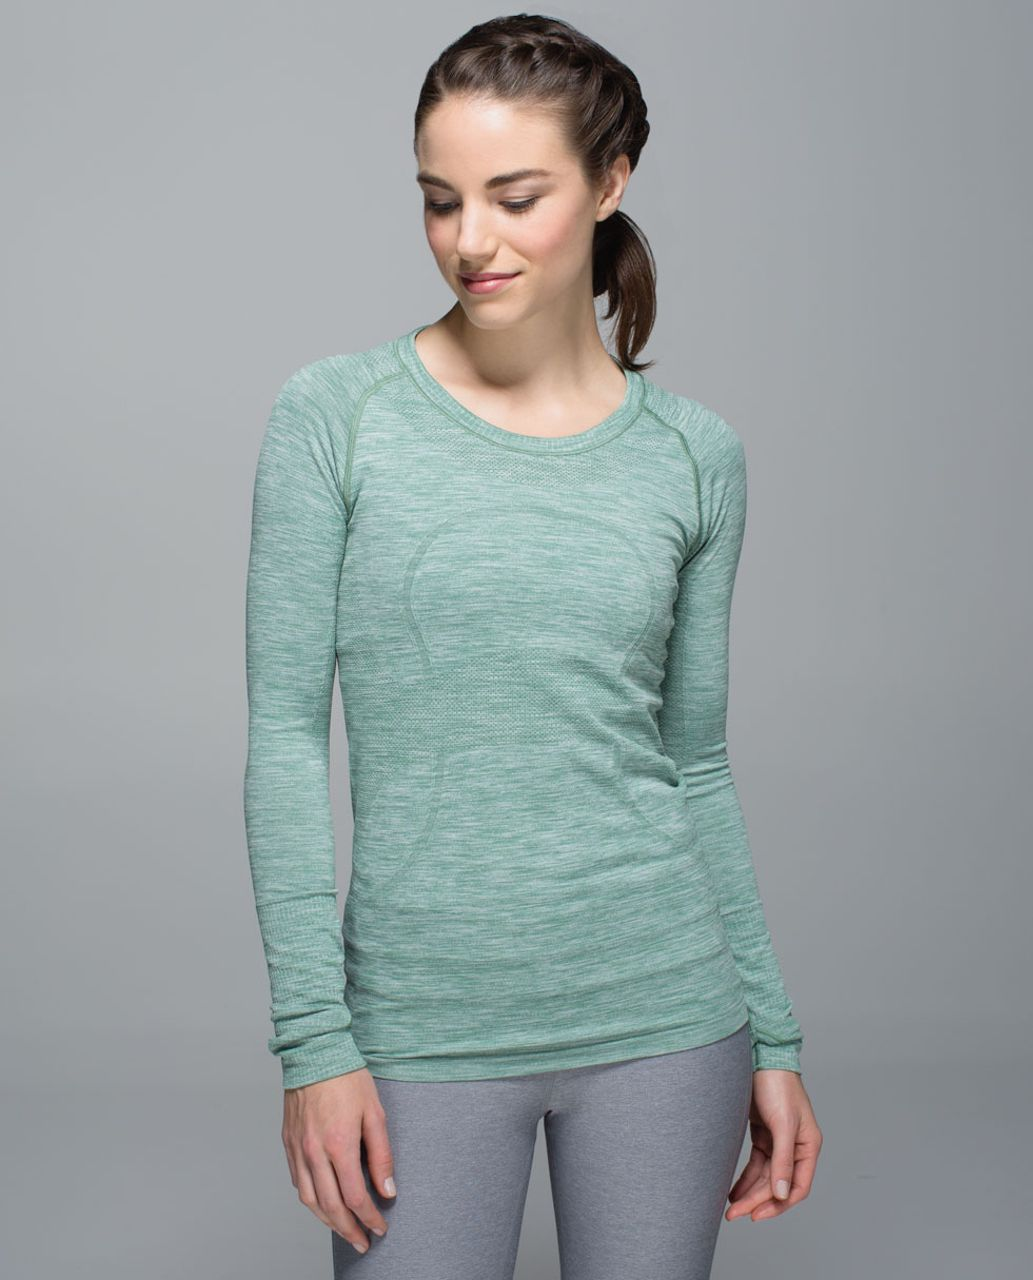 Lululemon Run:  Swiftly Tech Long Sleeve Crew - Space Dye Heathered Vintage Green